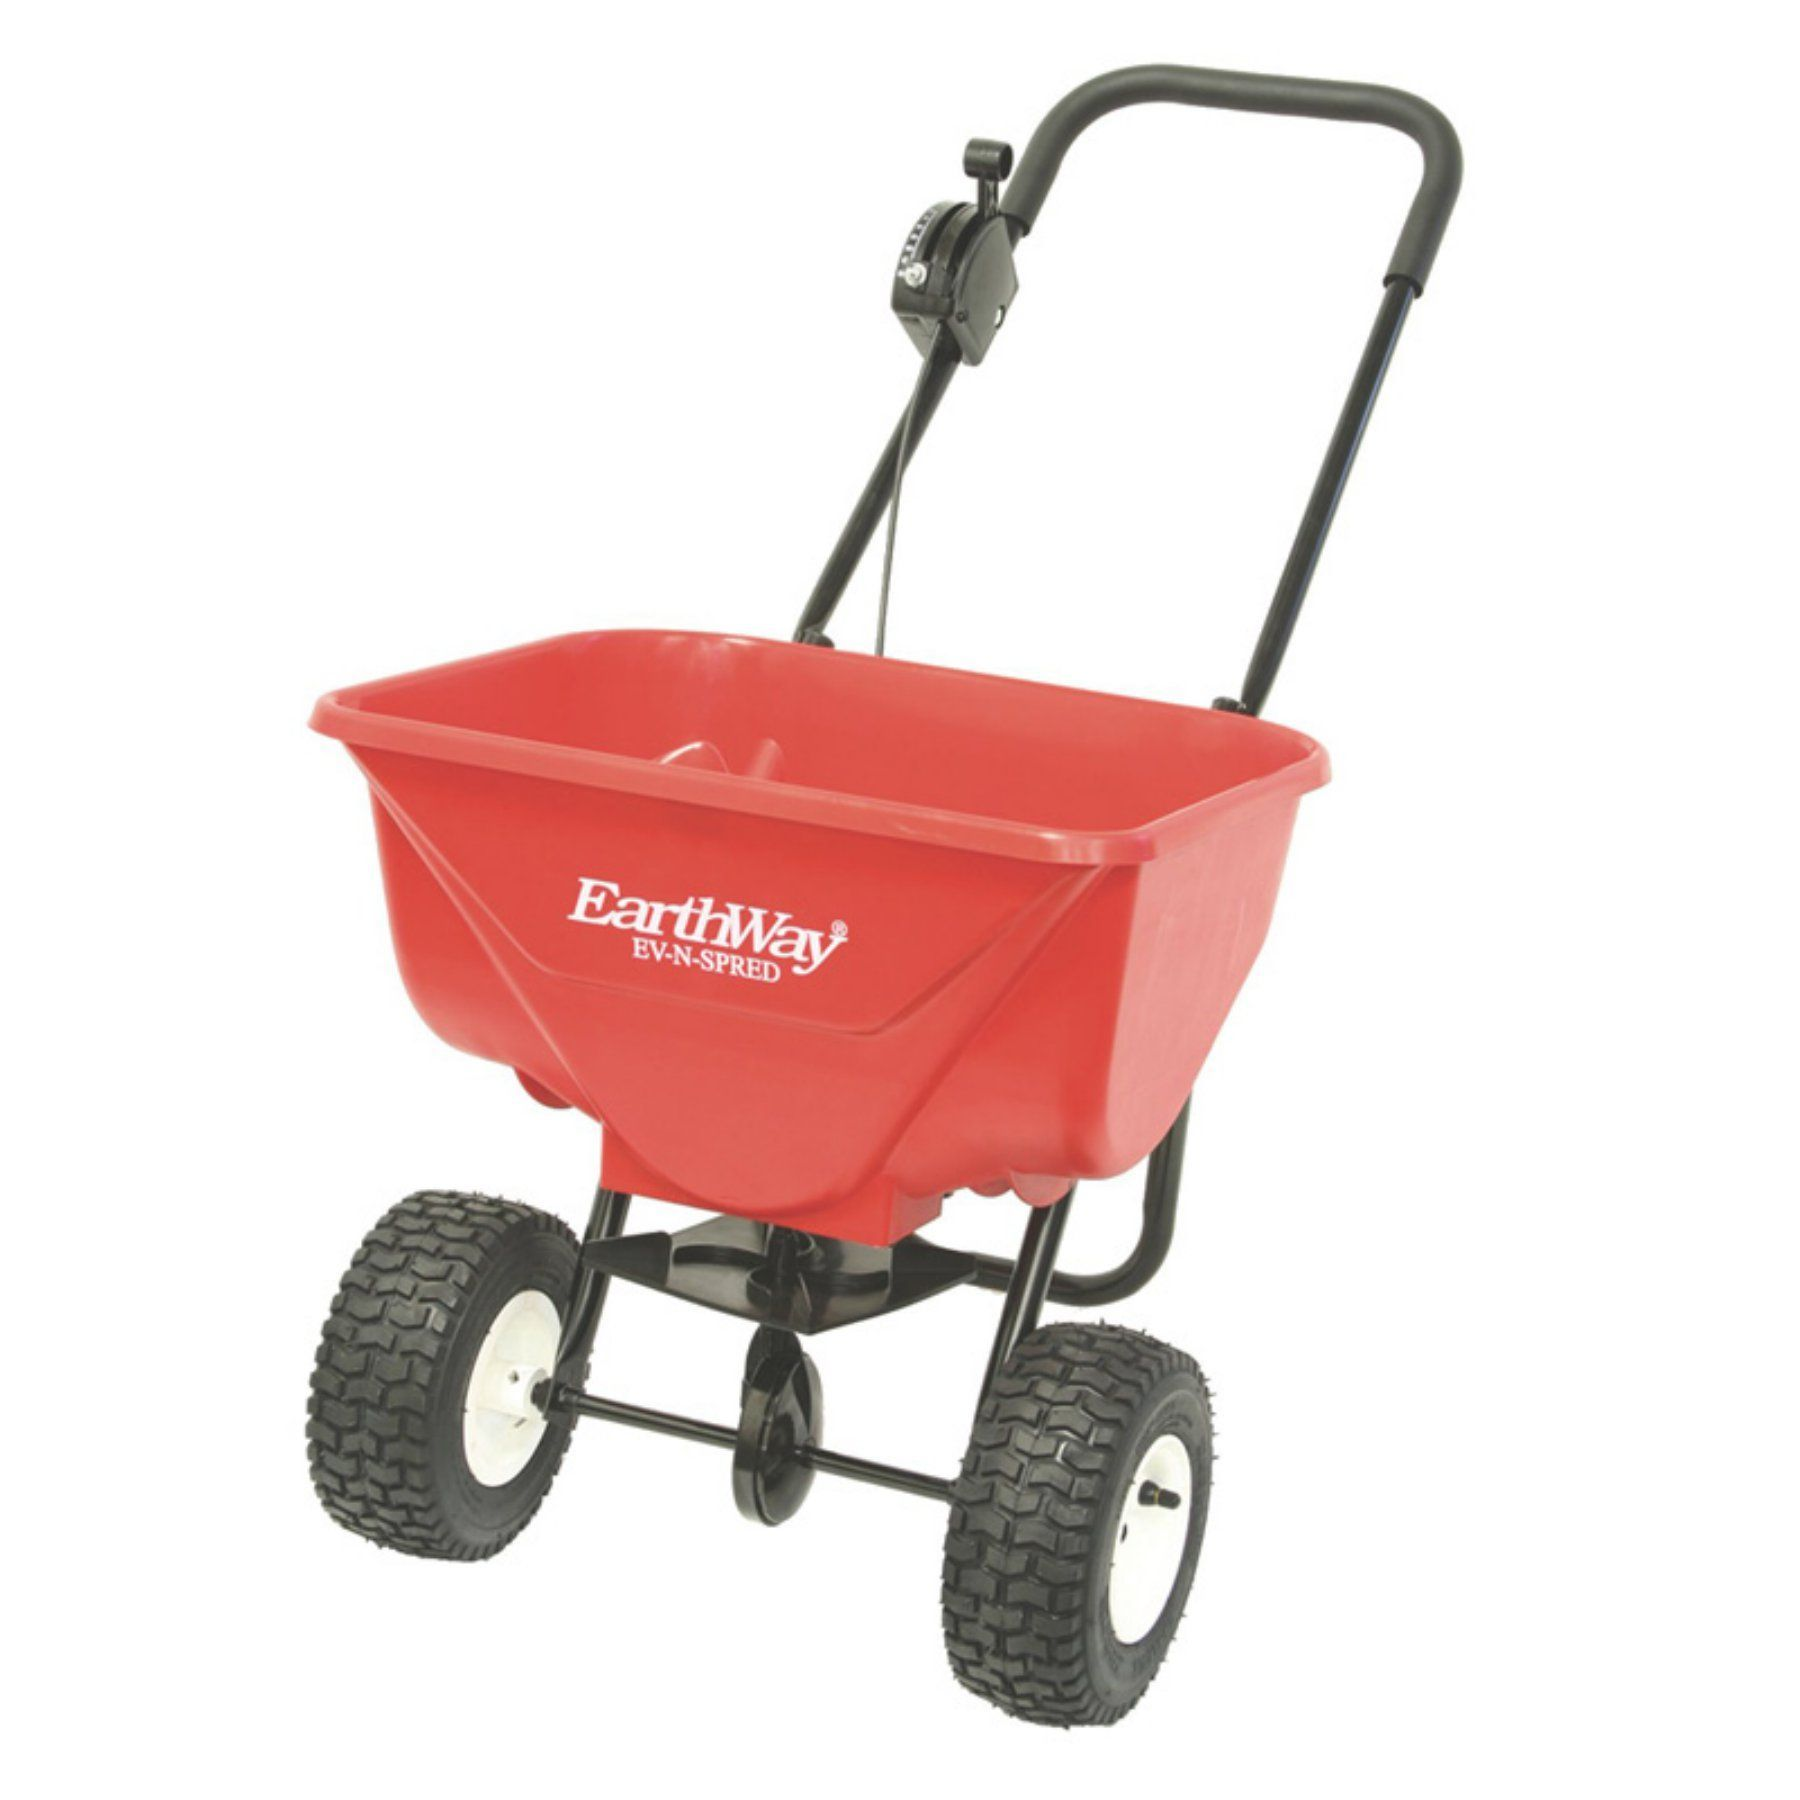 Earthway Deluxe Broadcast Spreader Products Lawn Fertilizer